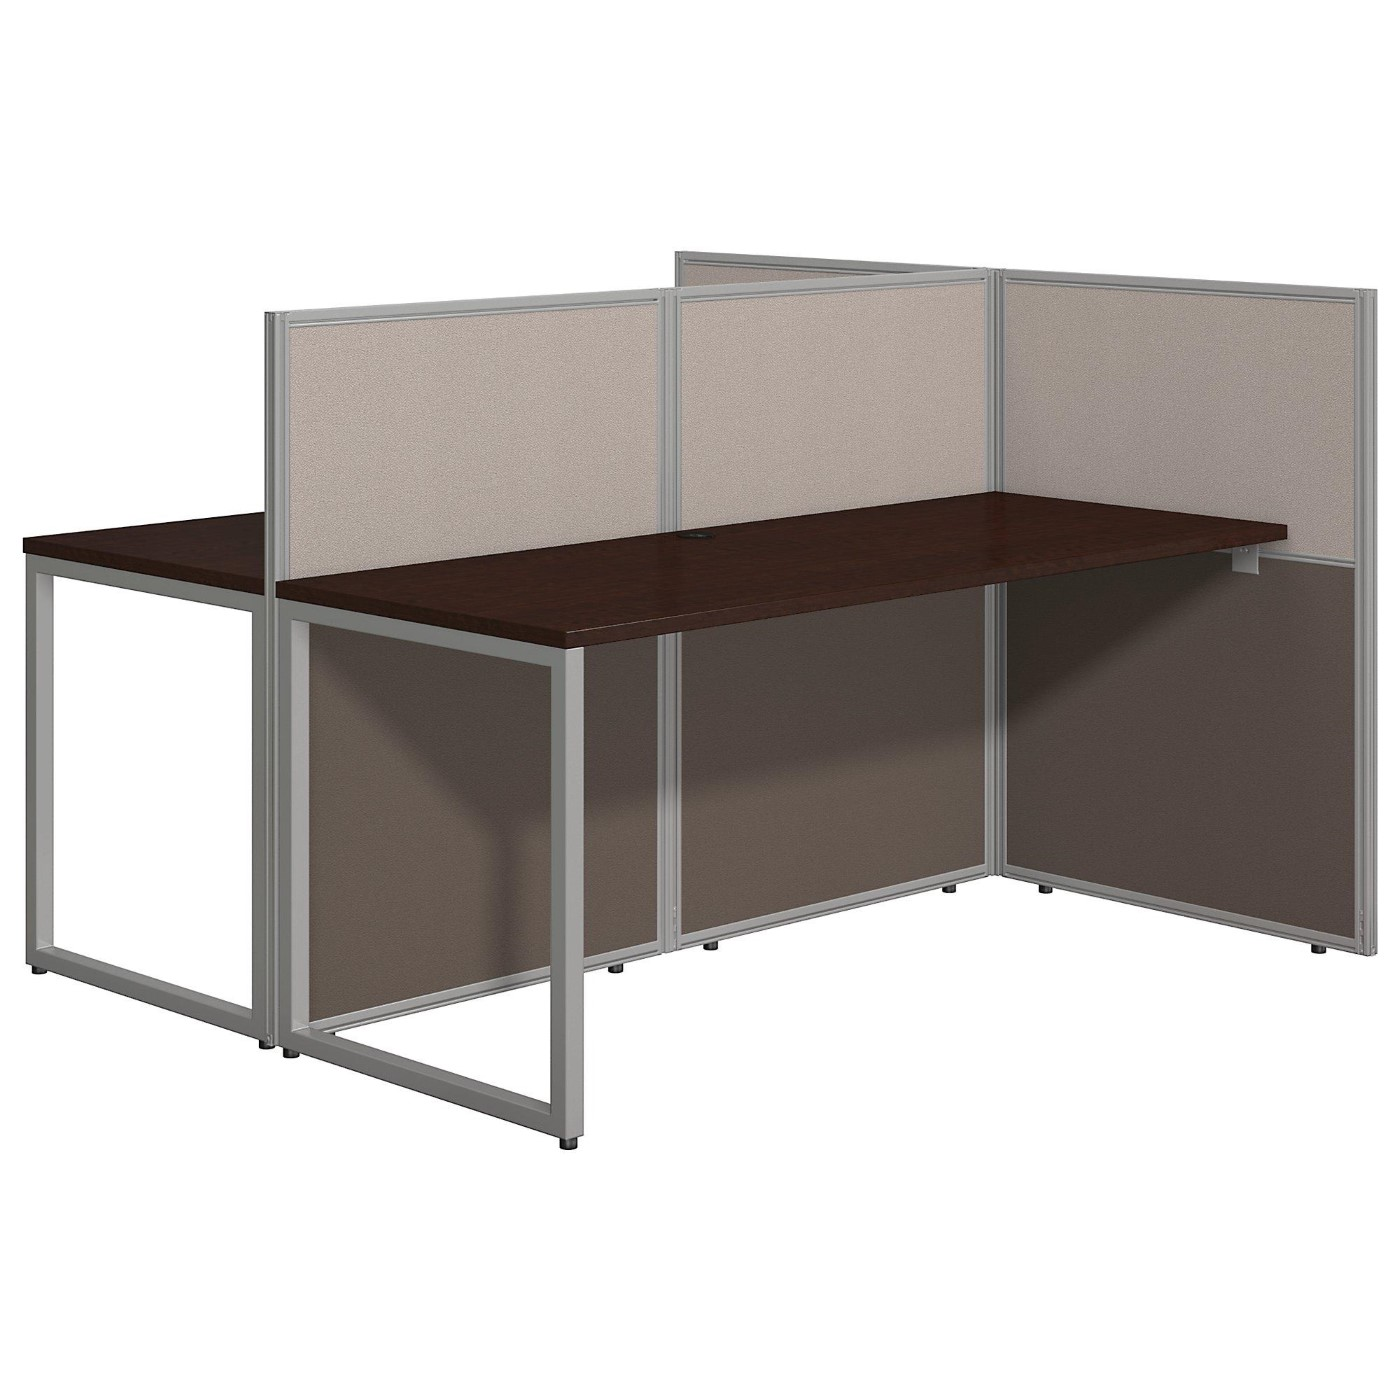 <font color=#c60><b>BUSH BUSINESS FURNITURE EASY OFFICE 60W TWO PERSON STRAIGHT DESK OPEN OFFICE. FREE SHIPPING</font></b>